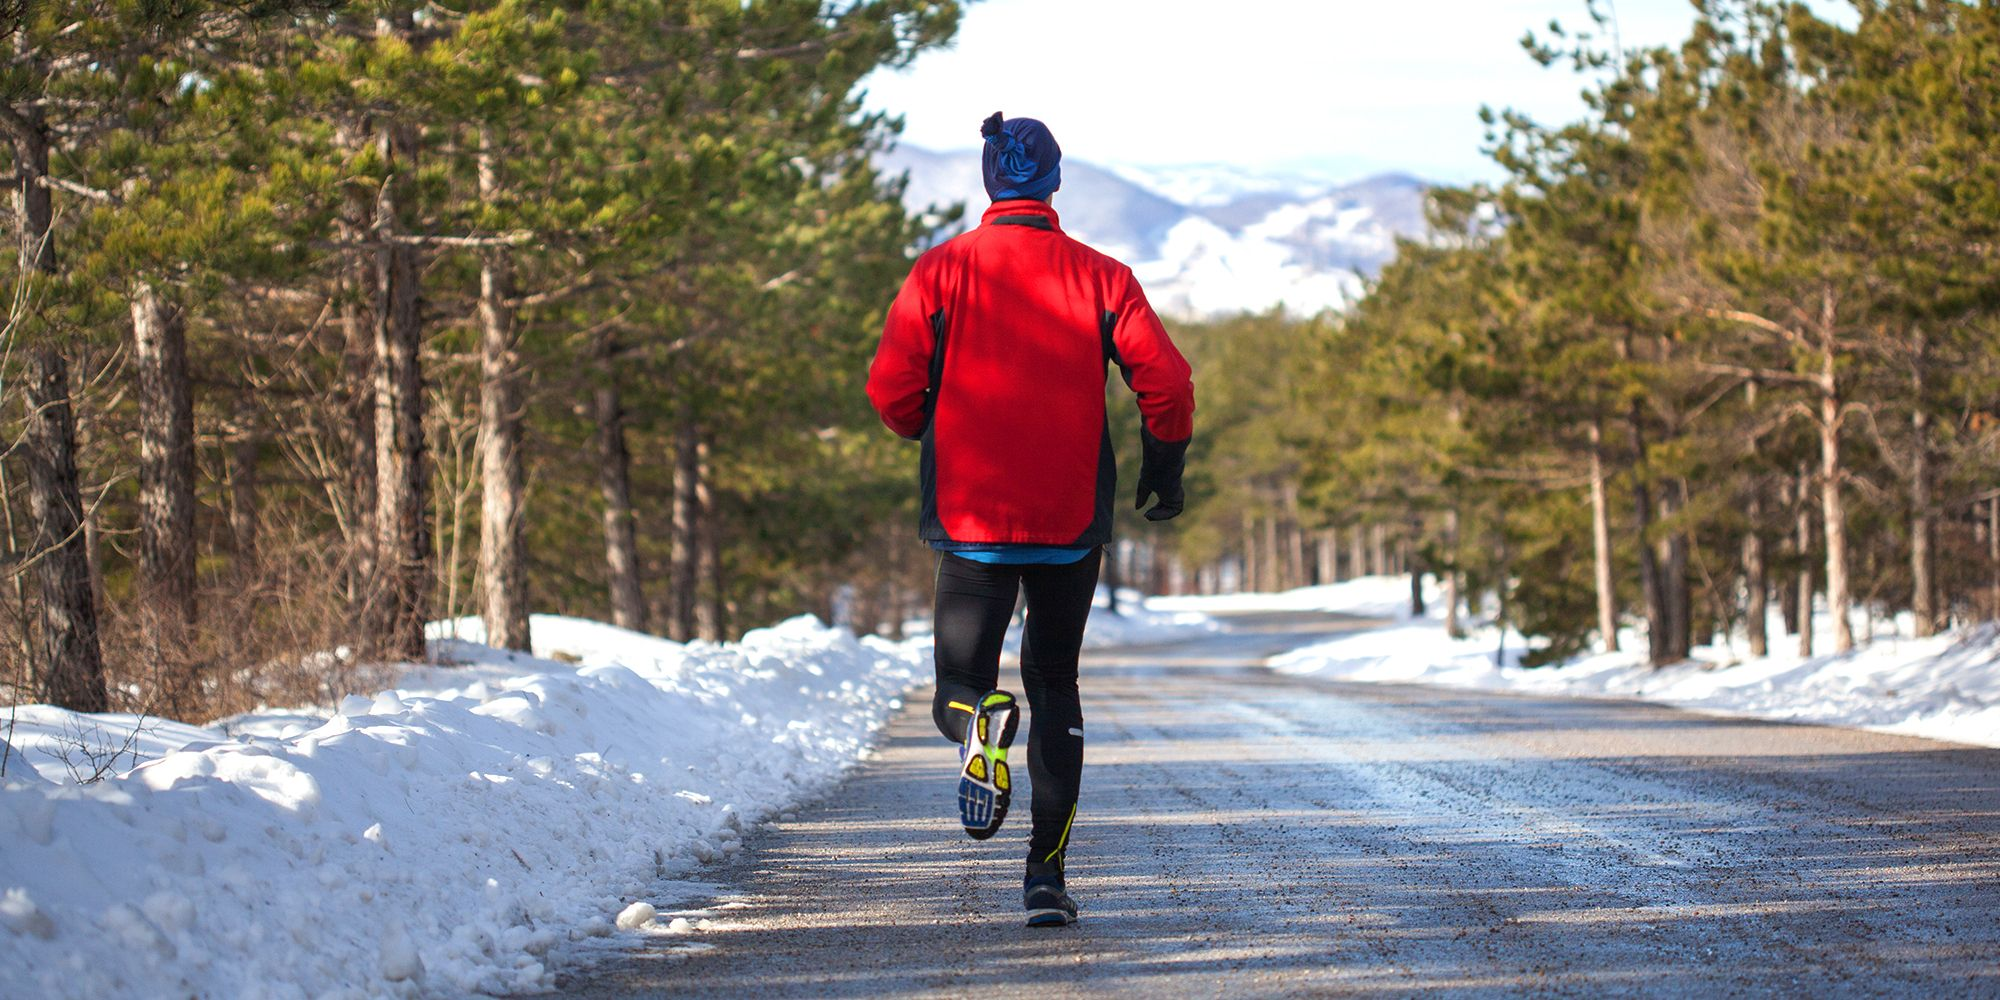 The Best Winter Running Gear for 2019 - Winter Running Clothes for ... 696d24fc0